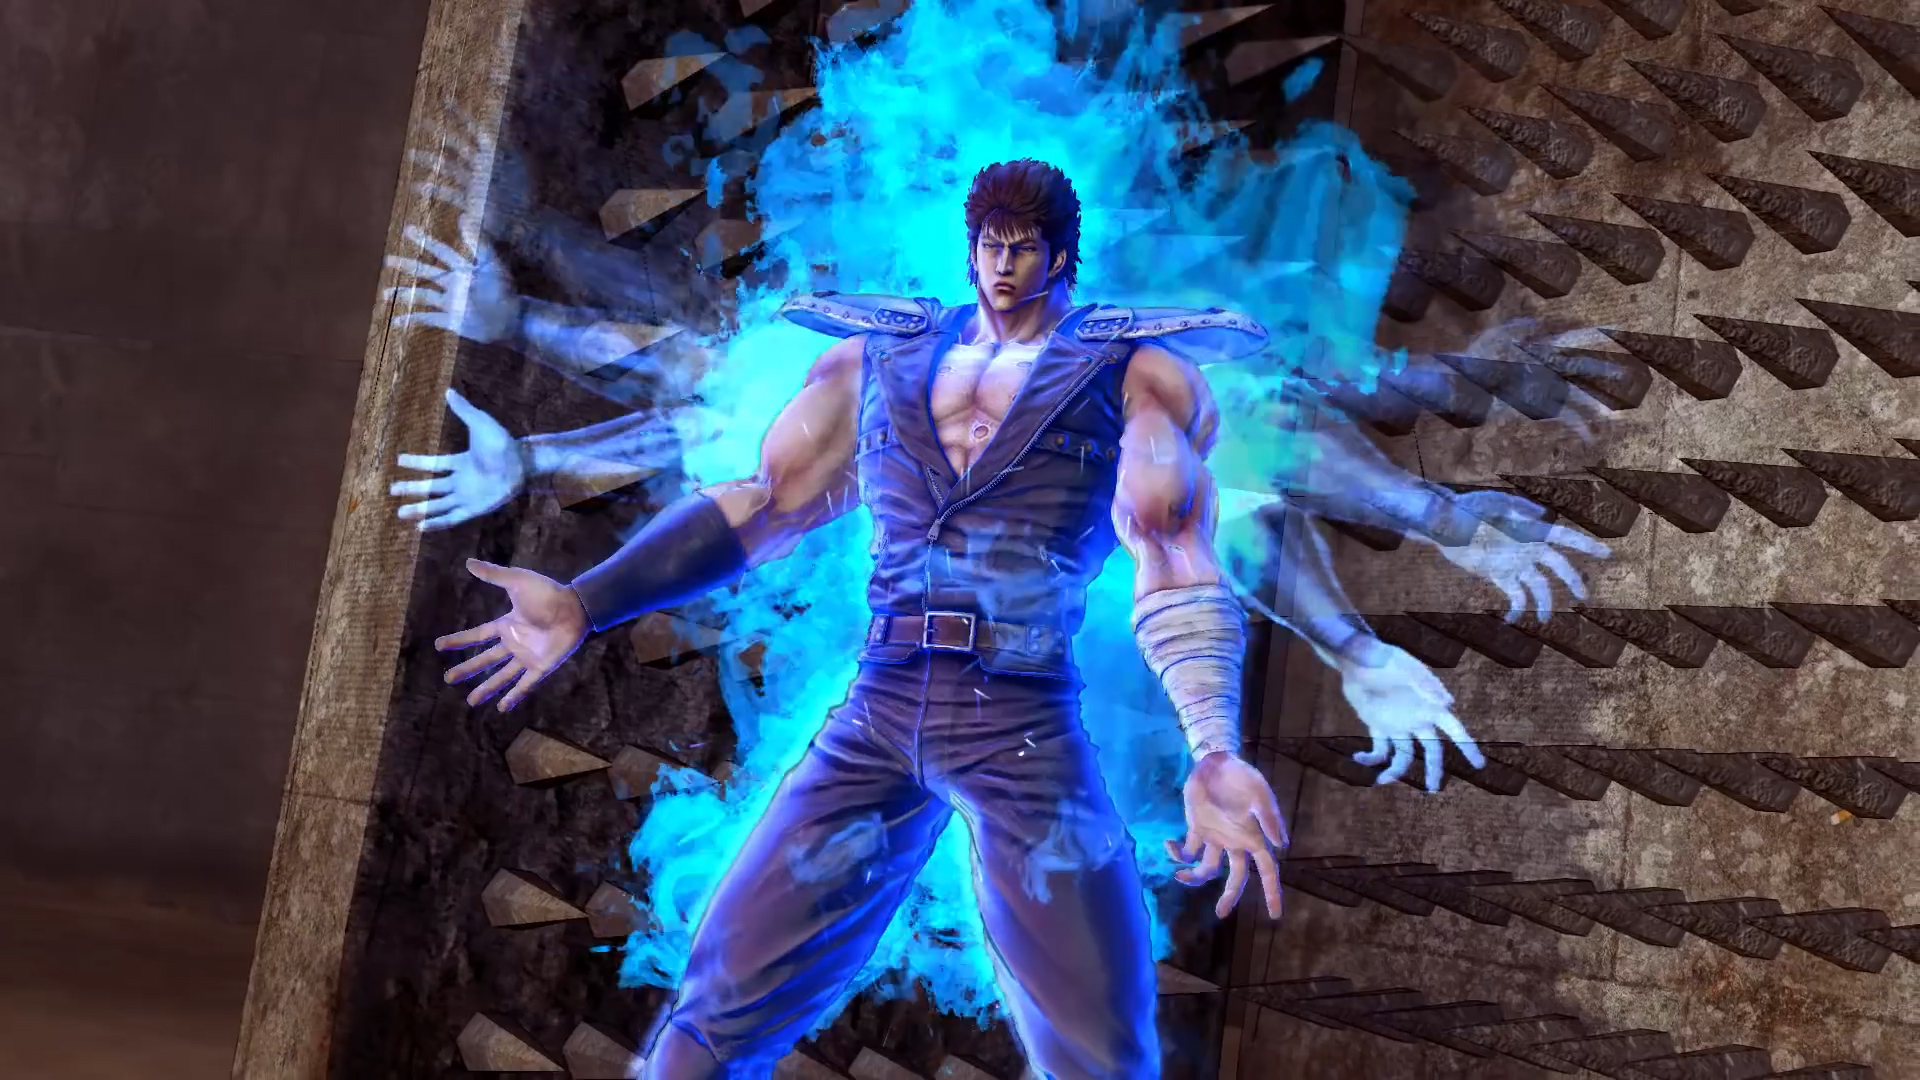 Fist of the North Star Lost Paradise OnRPG 1920x1080